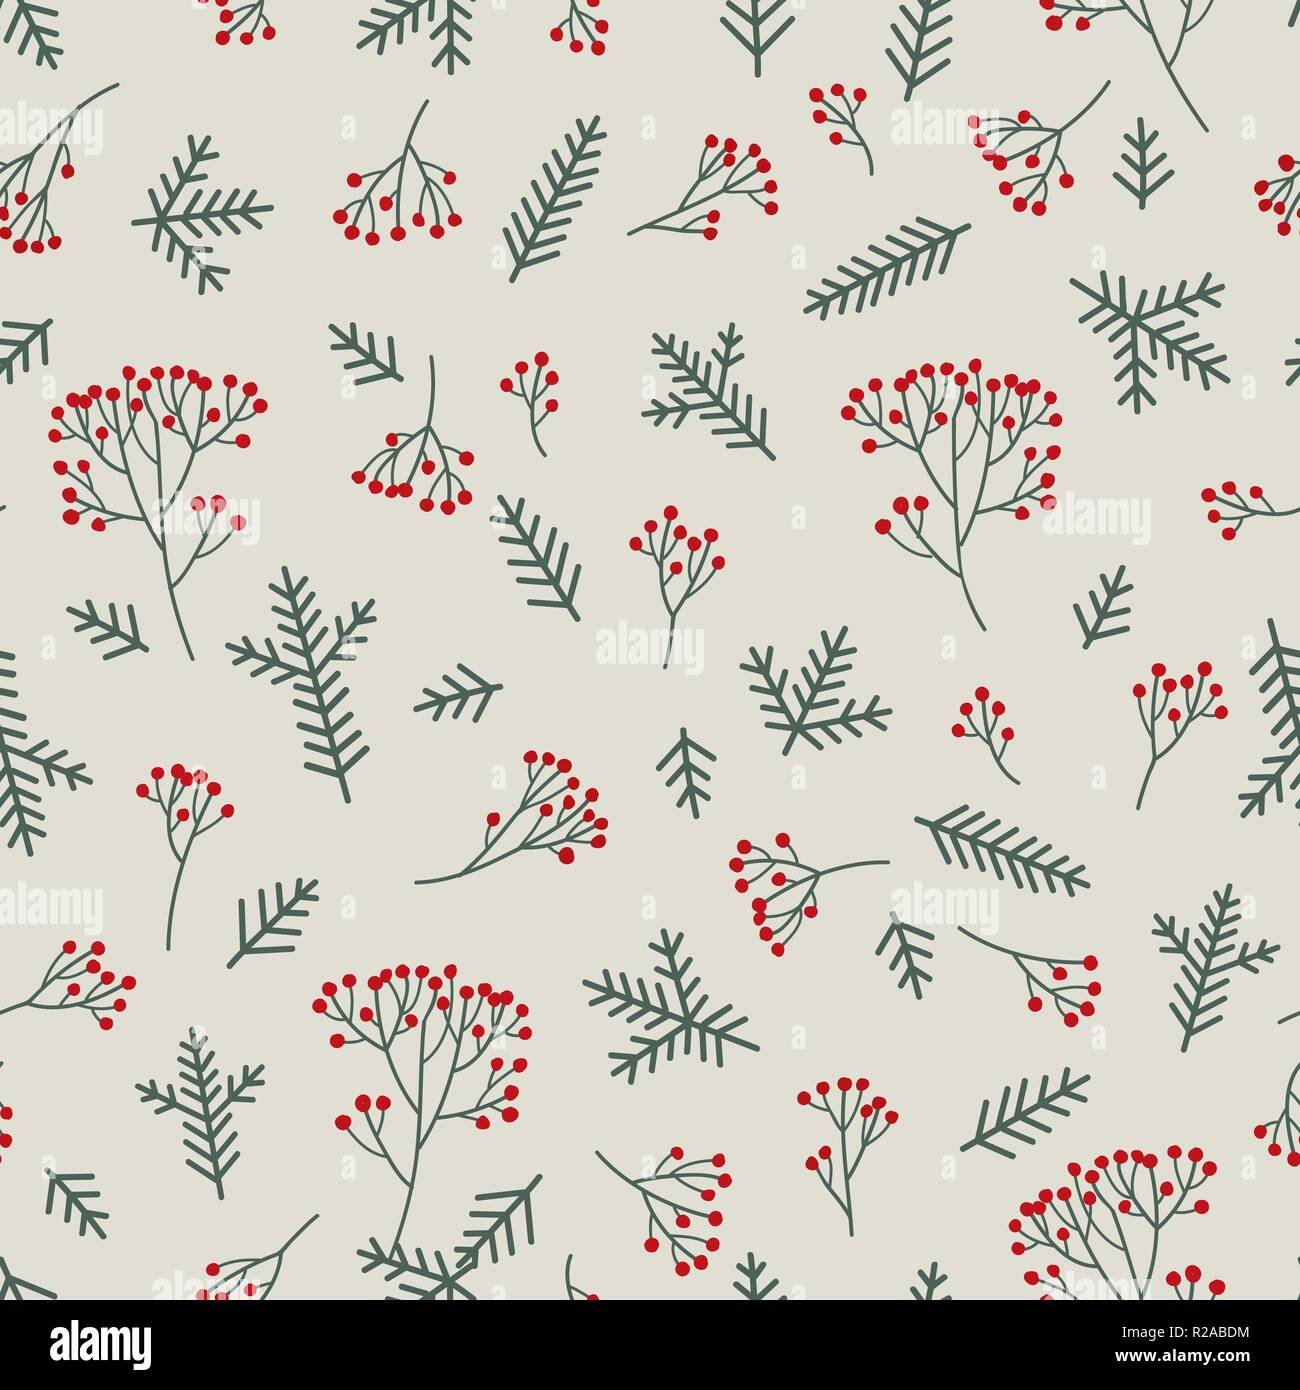 Christmas floral seamless pattern. Winter nature background. Fir tree, spruce branches, berries. - Stock Vector